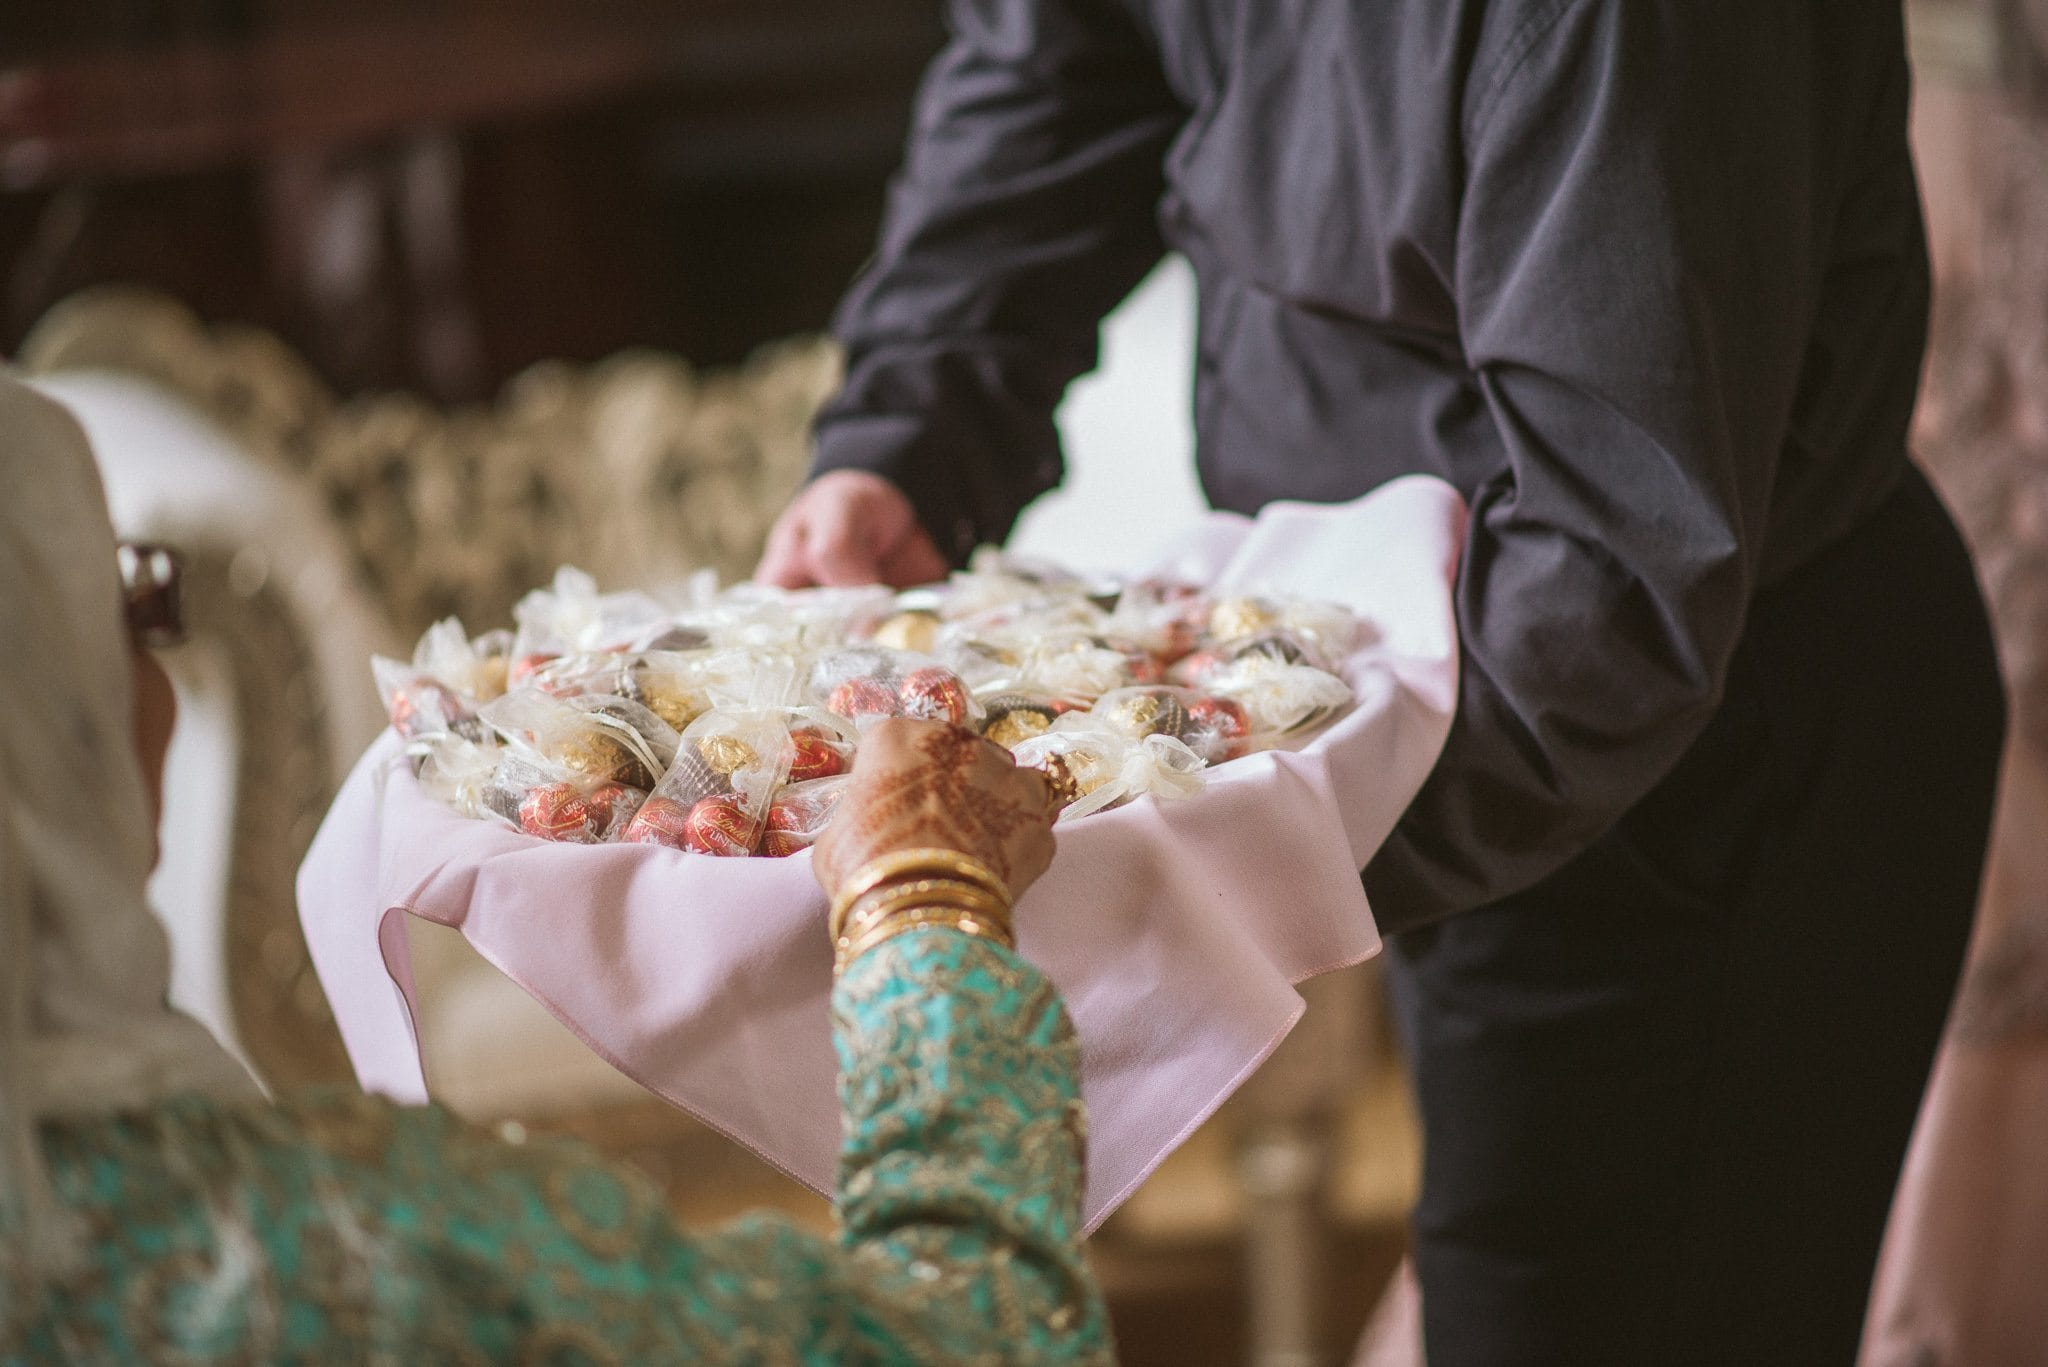 Traditional sweets are handed out from a basket at the end of the wedding ceremony